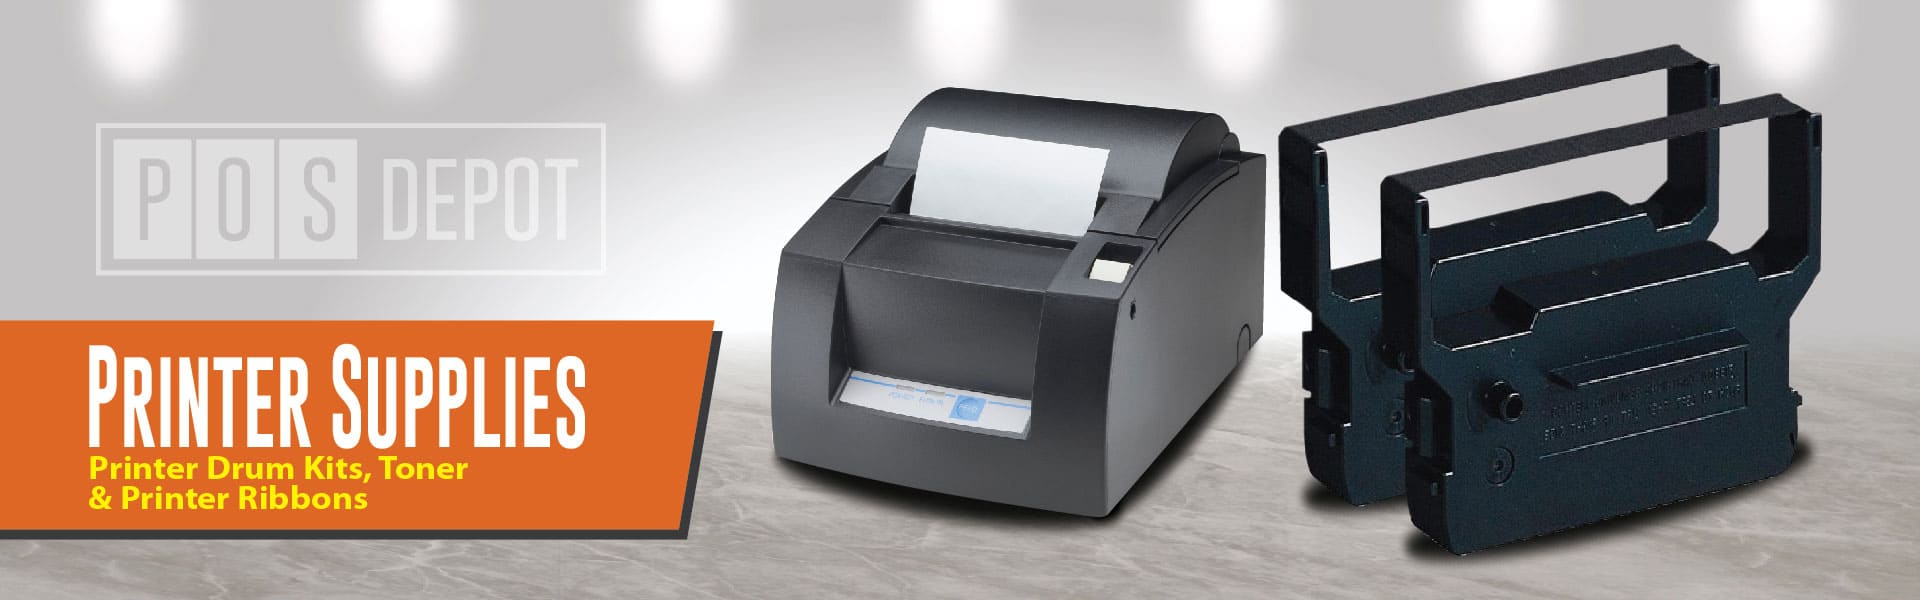 POS-Depot.com™ Point of Sale Hardware Sales